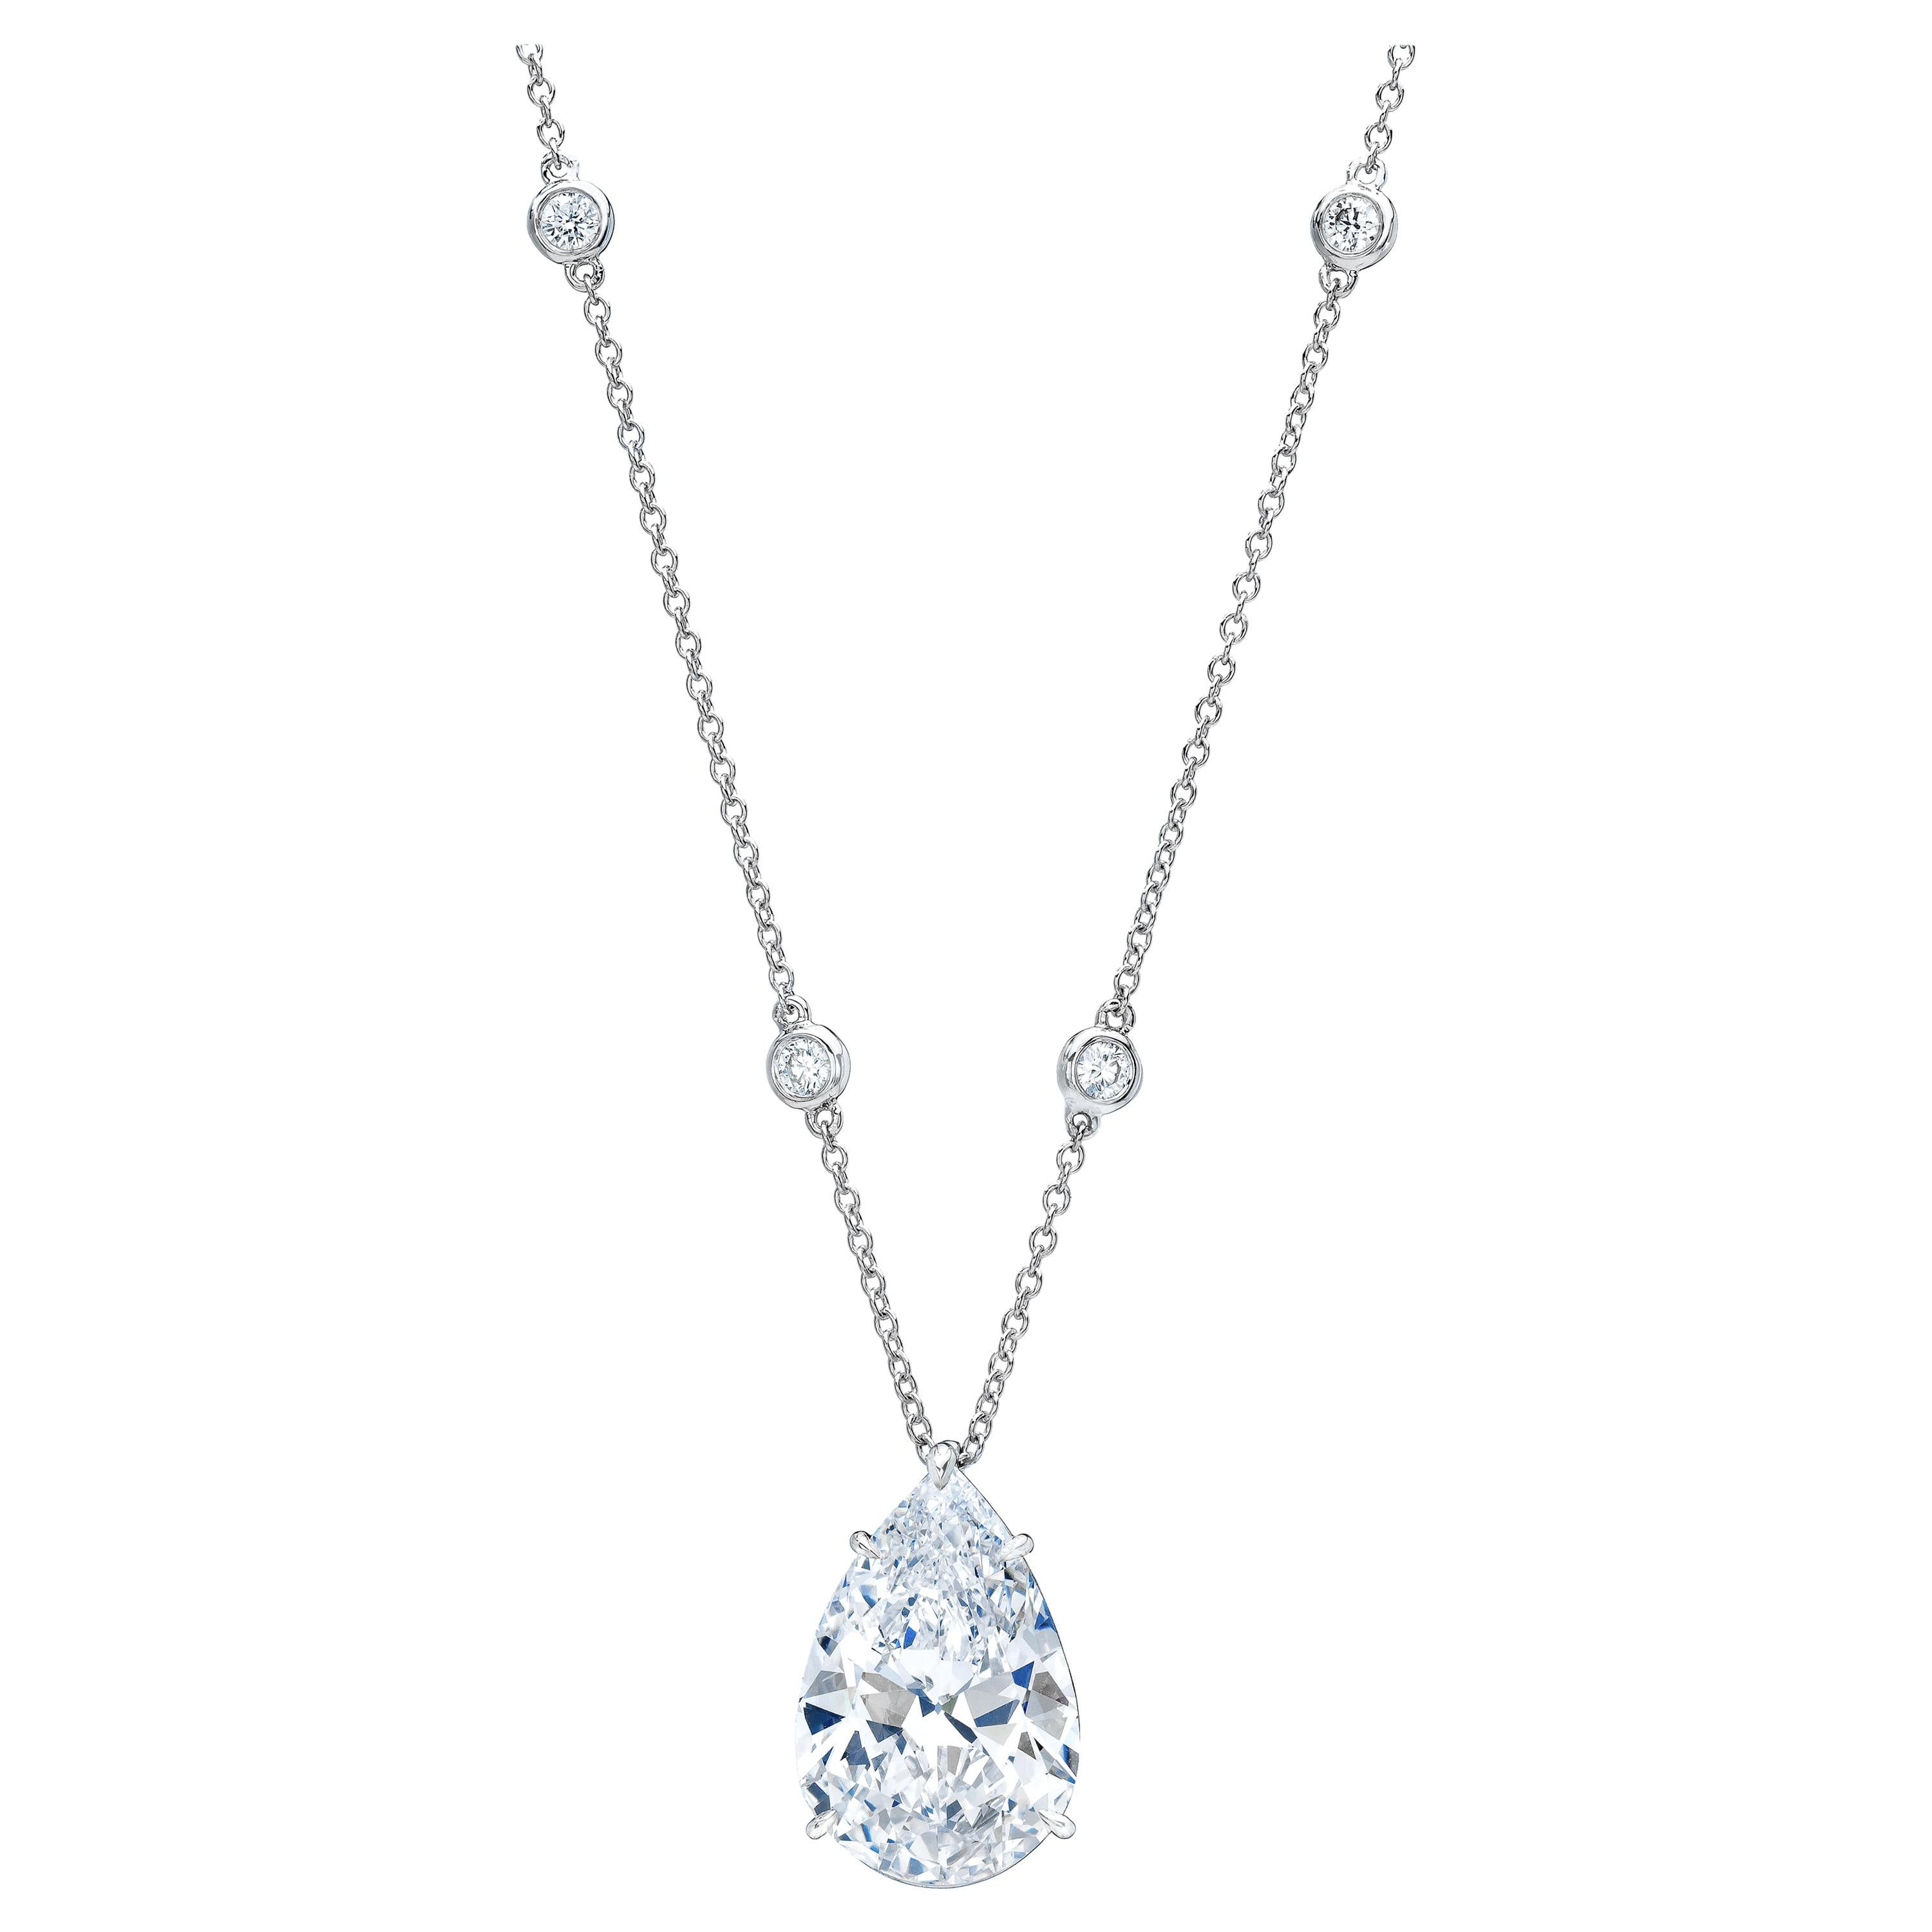 12.12 Carat Pear-Shaped Diamond Pendent GIA Certified